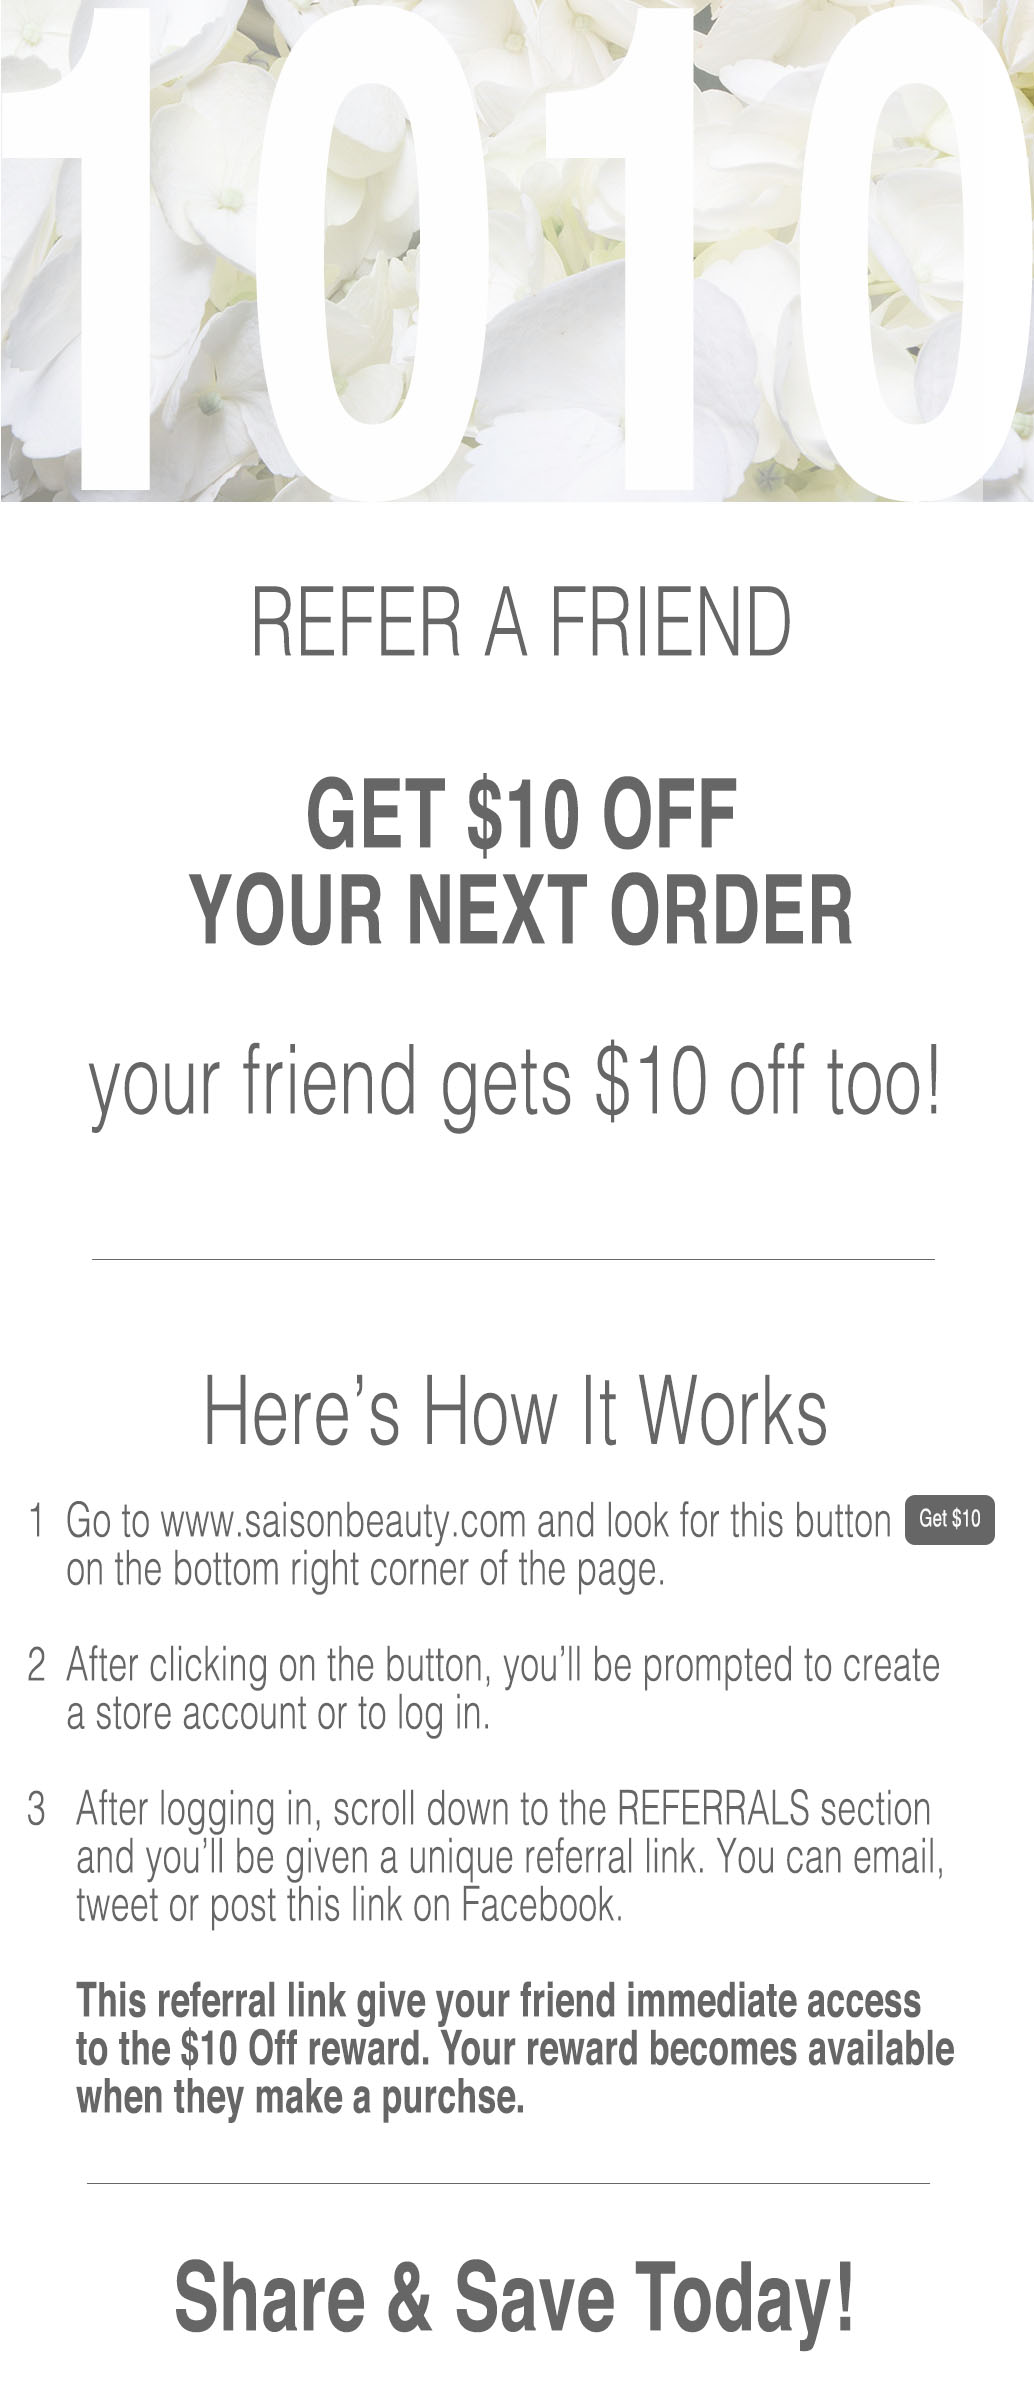 Get $10 When You Refer A Friend to Saison Beauty